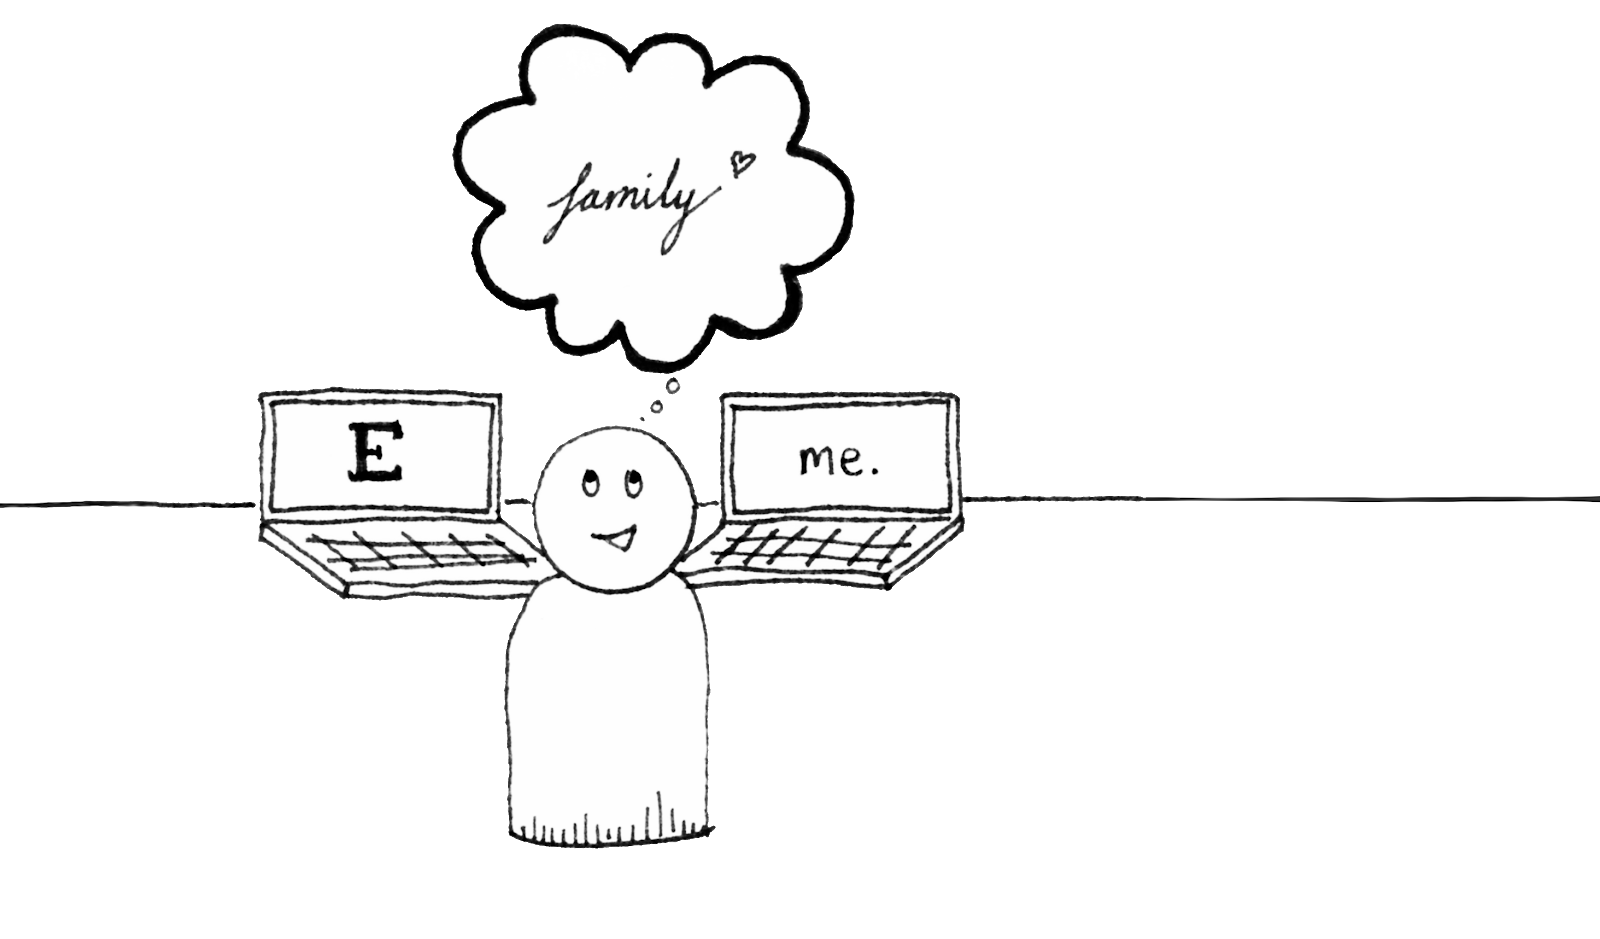 """A hand-drawn weeble person representing the author looks up lovingly at the thought of family while two laptops sit behind her, one that says """"E"""" and one that says """"me"""""""